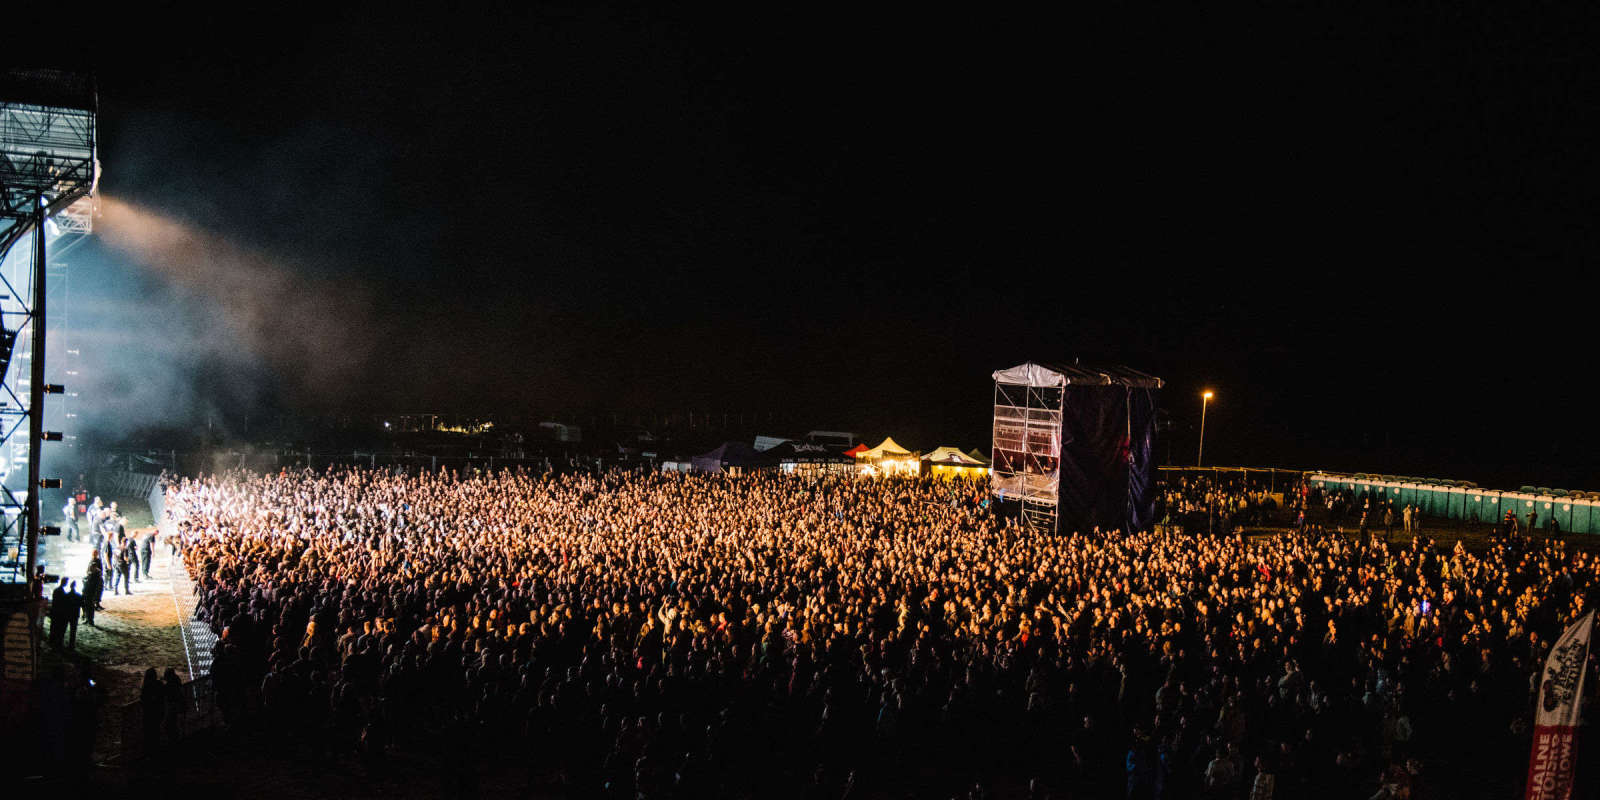 Jarocin Festival 2016 - concerts on stage and crowd